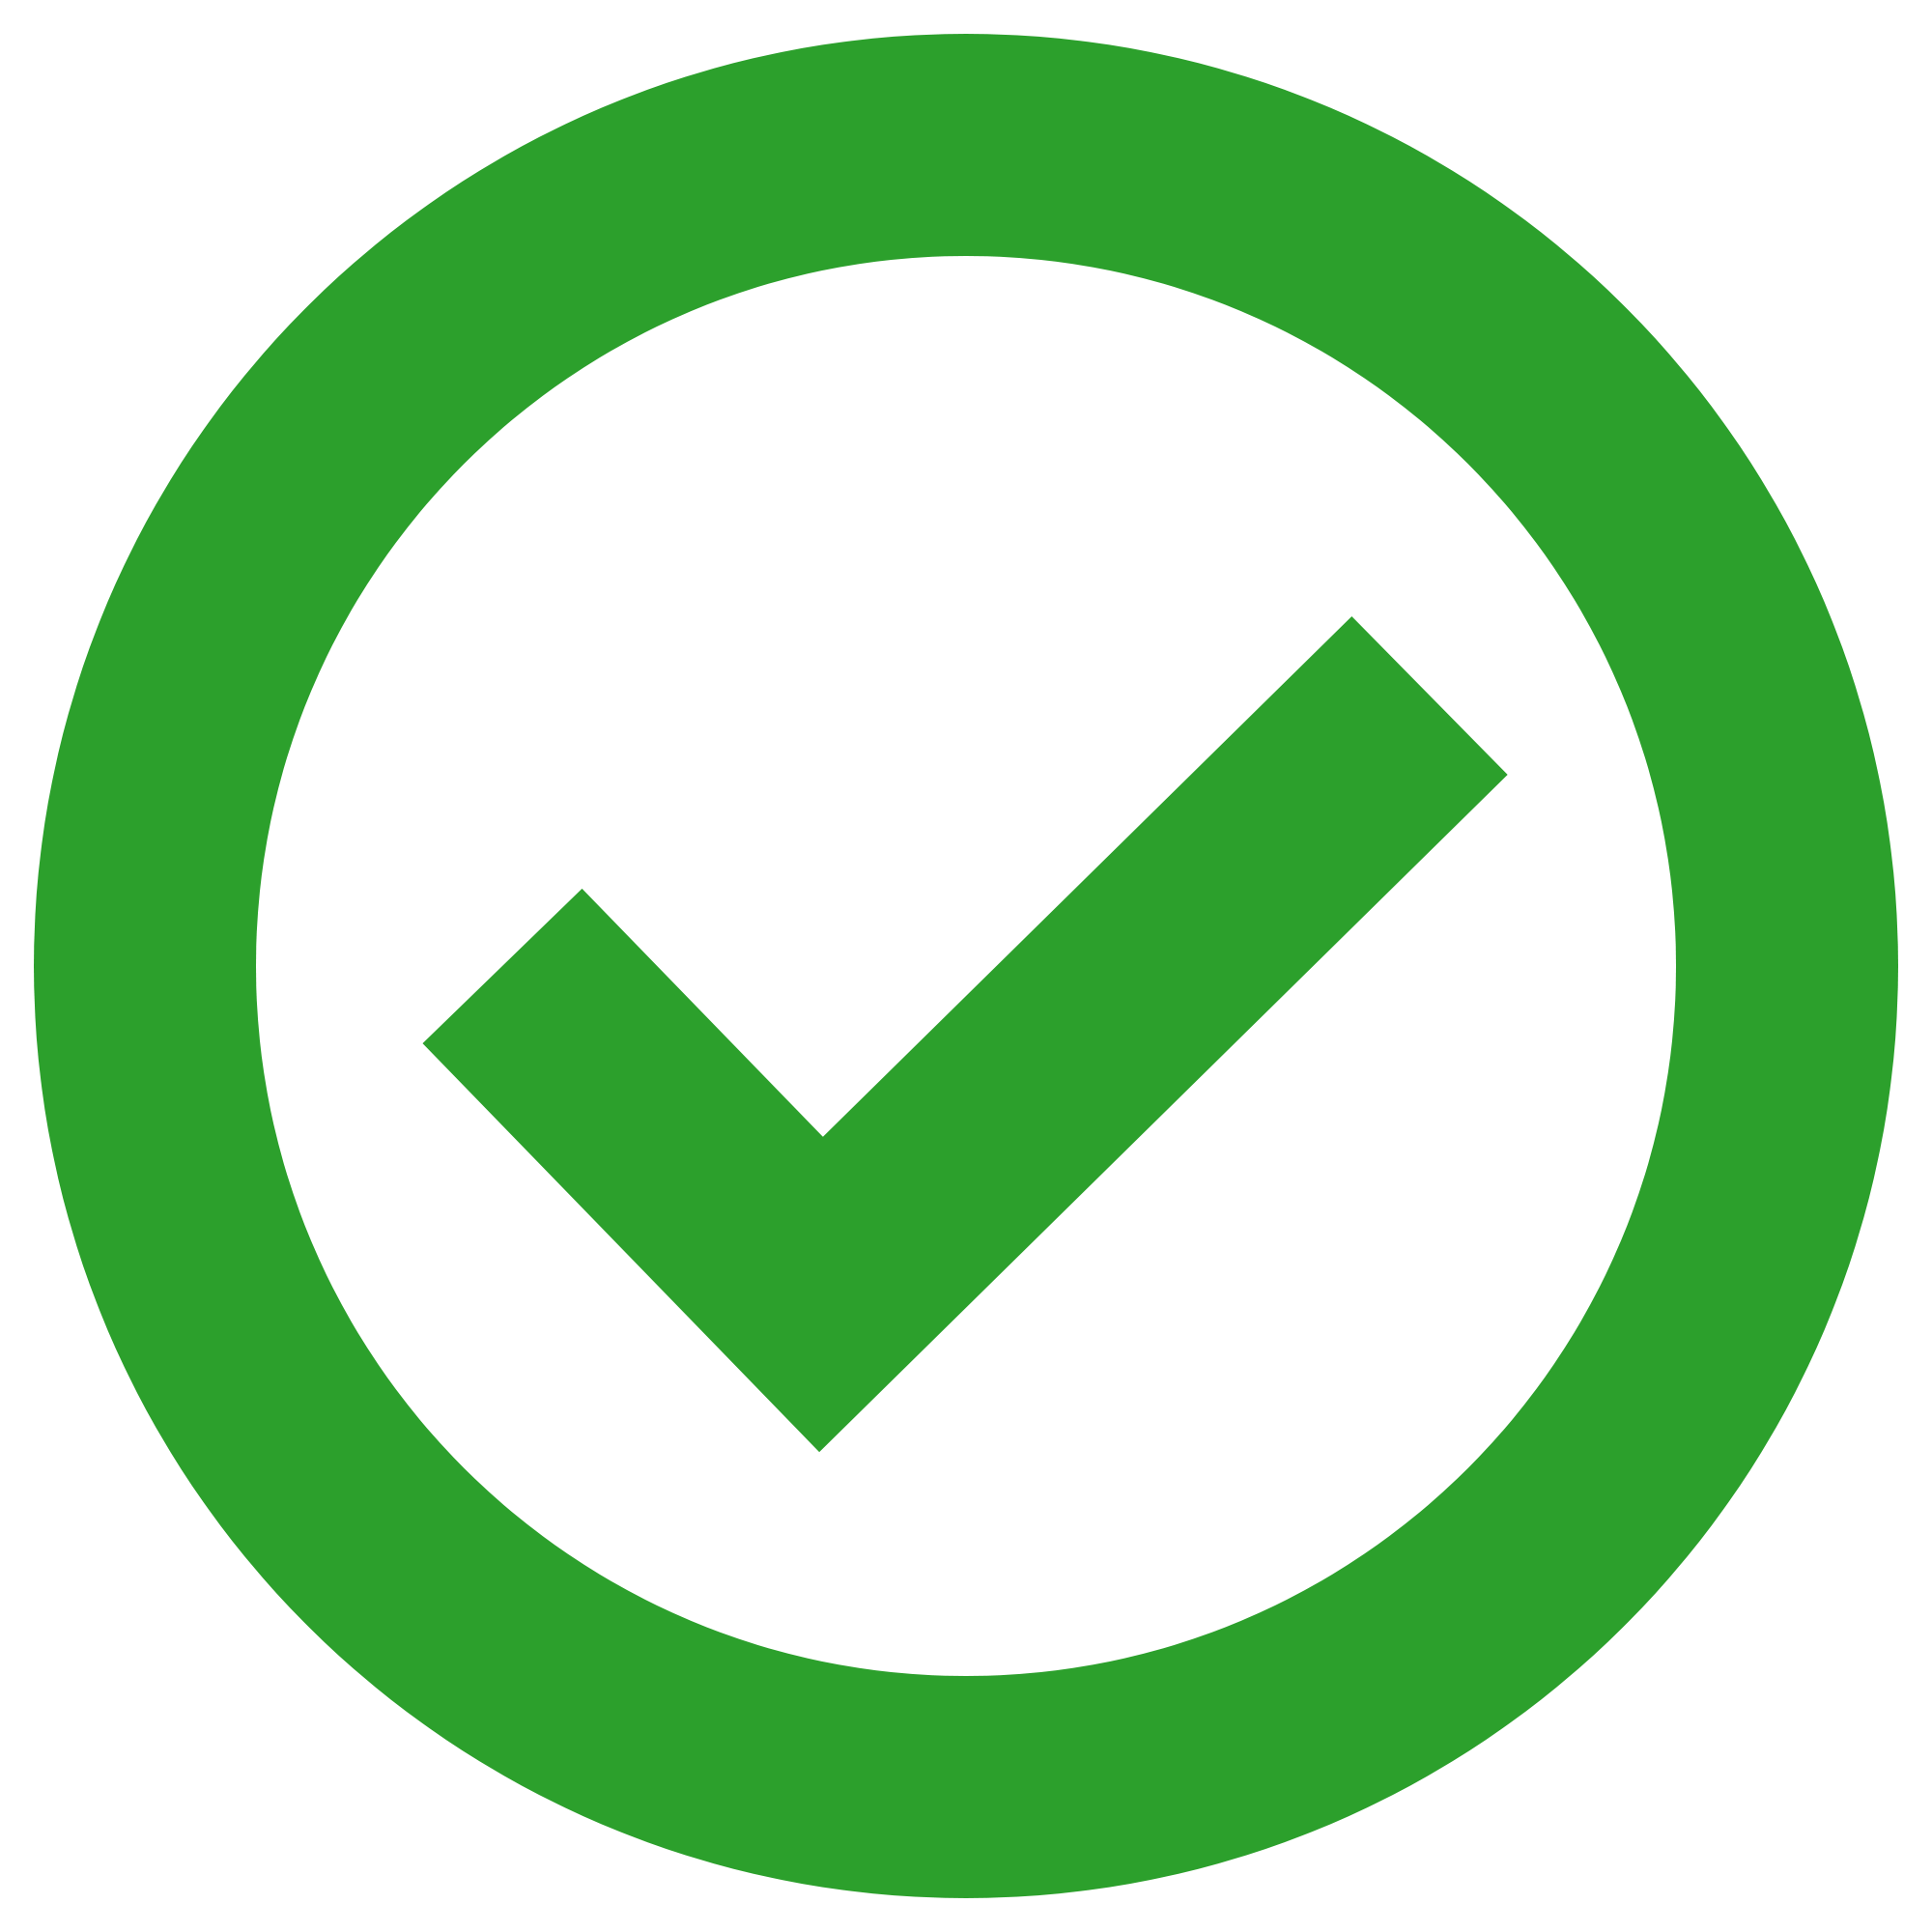 File yes check circle. Svg checkmark blank background image royalty free